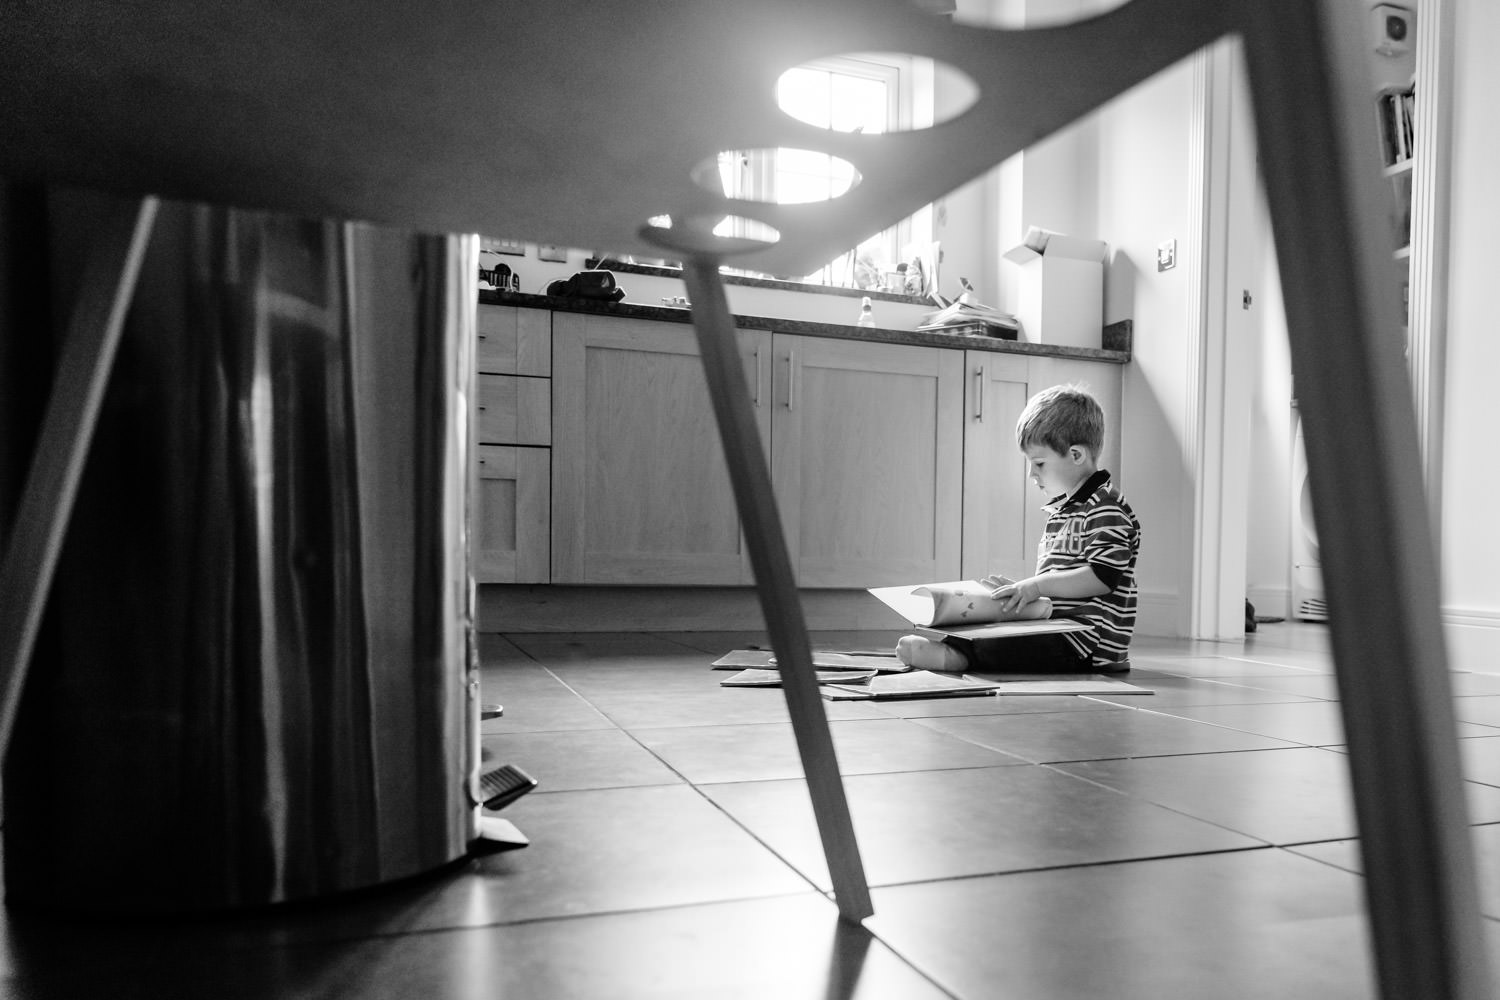 Boy sat on kitchen floor reading books